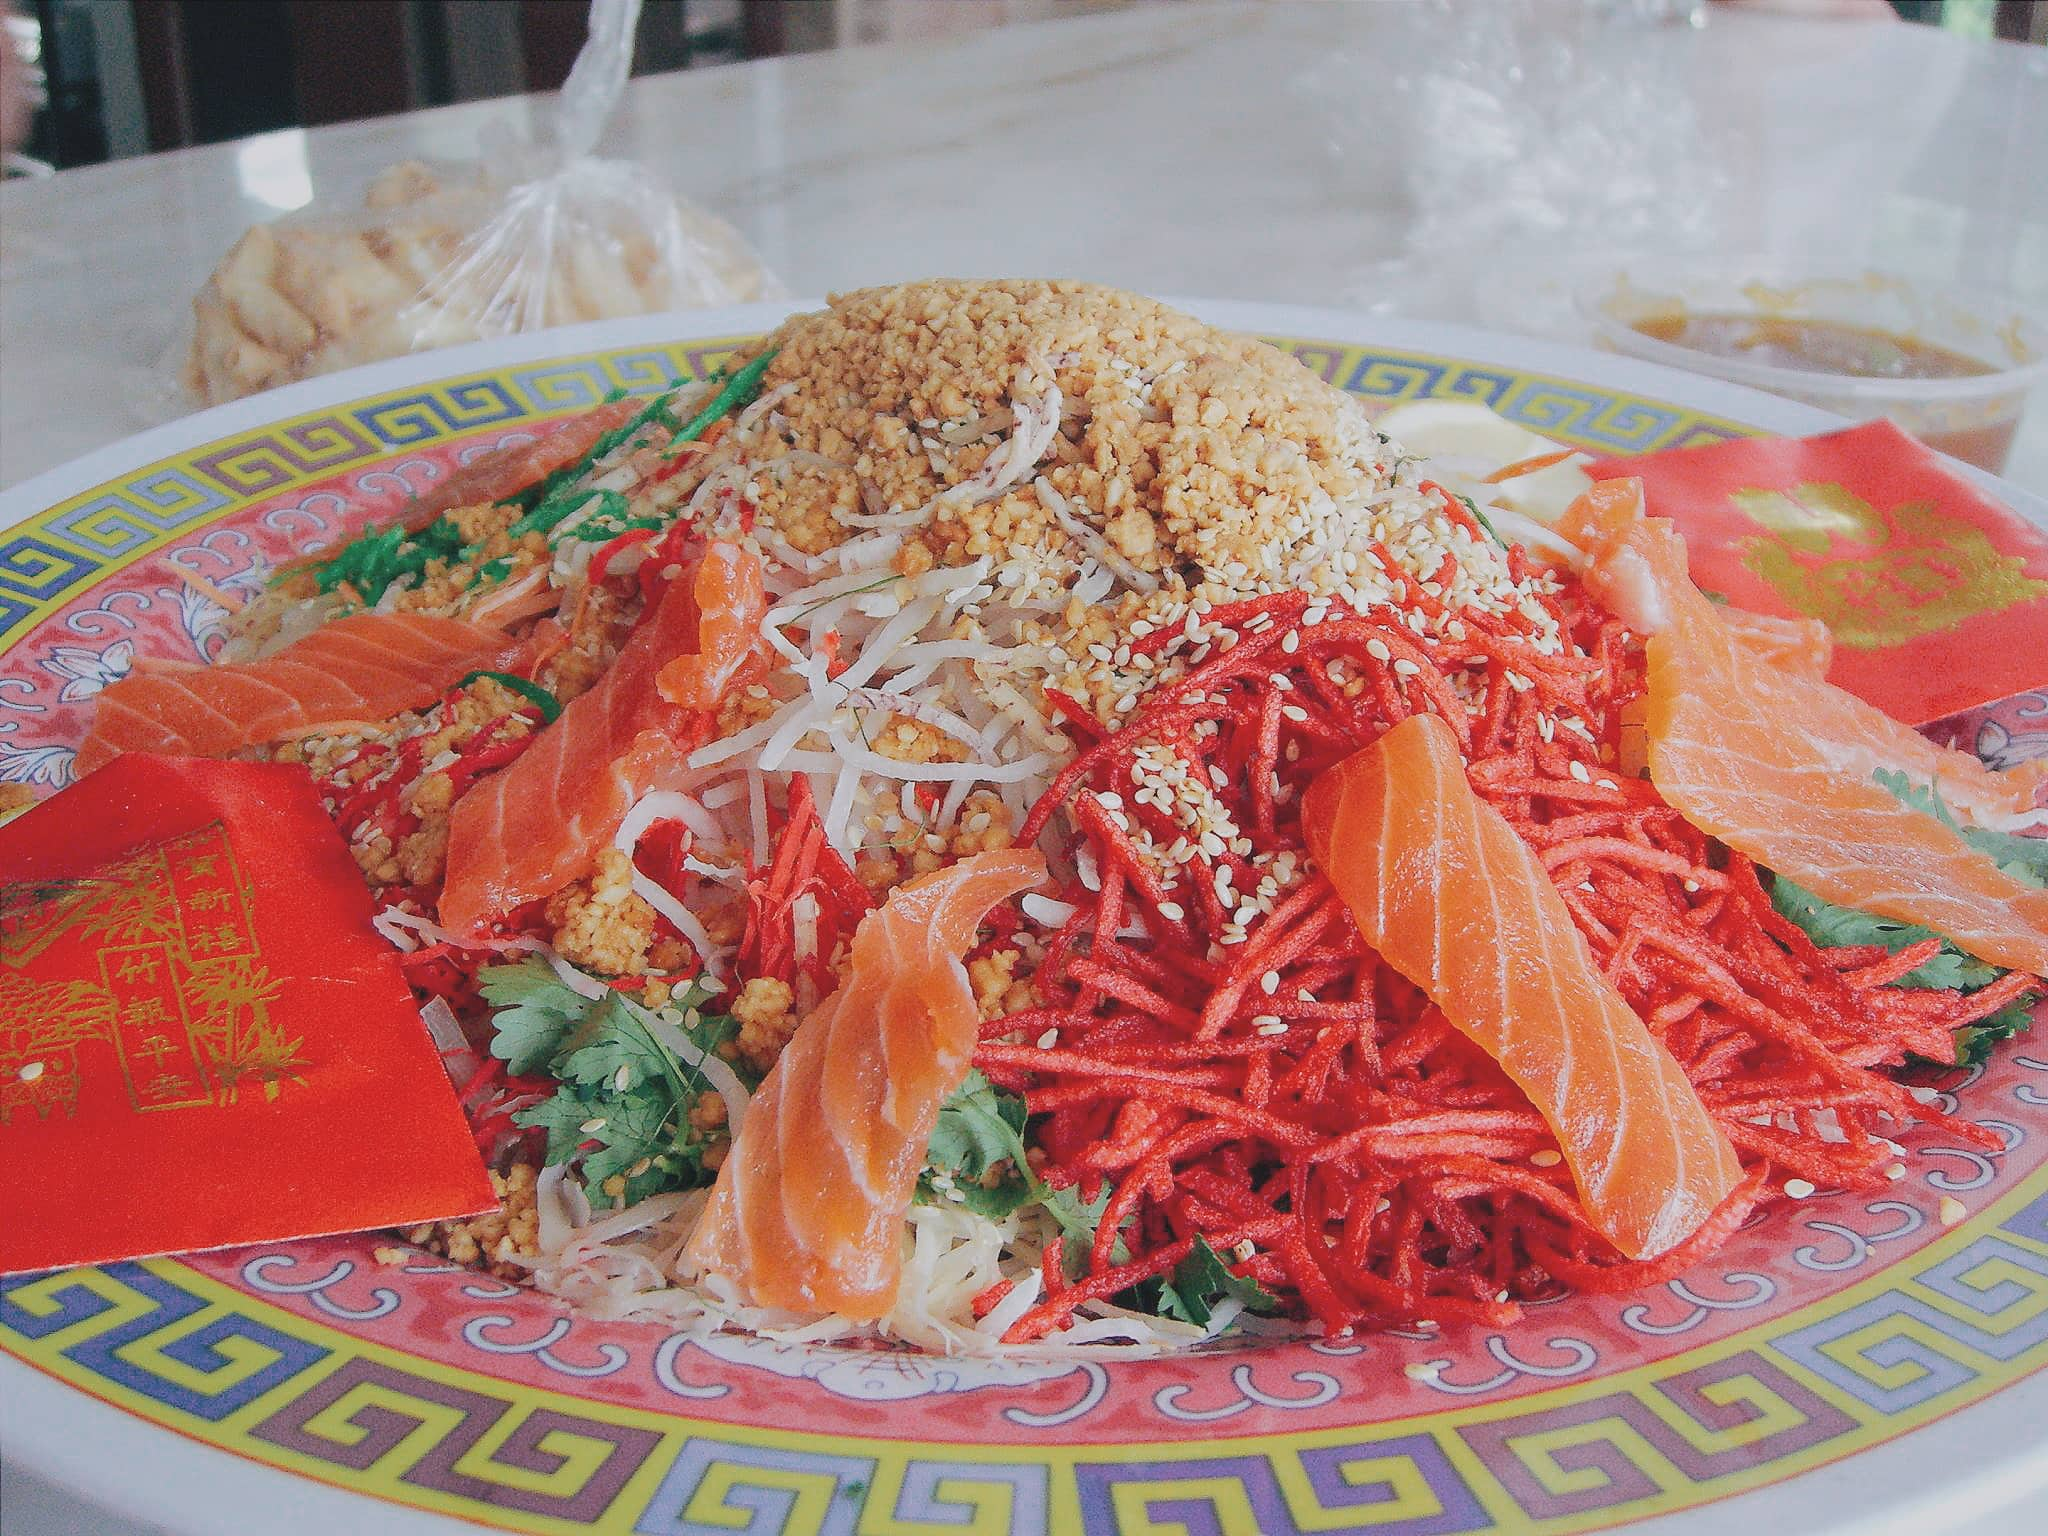 Fresh Salmon is part of the Chinese New Year Prosperity Food